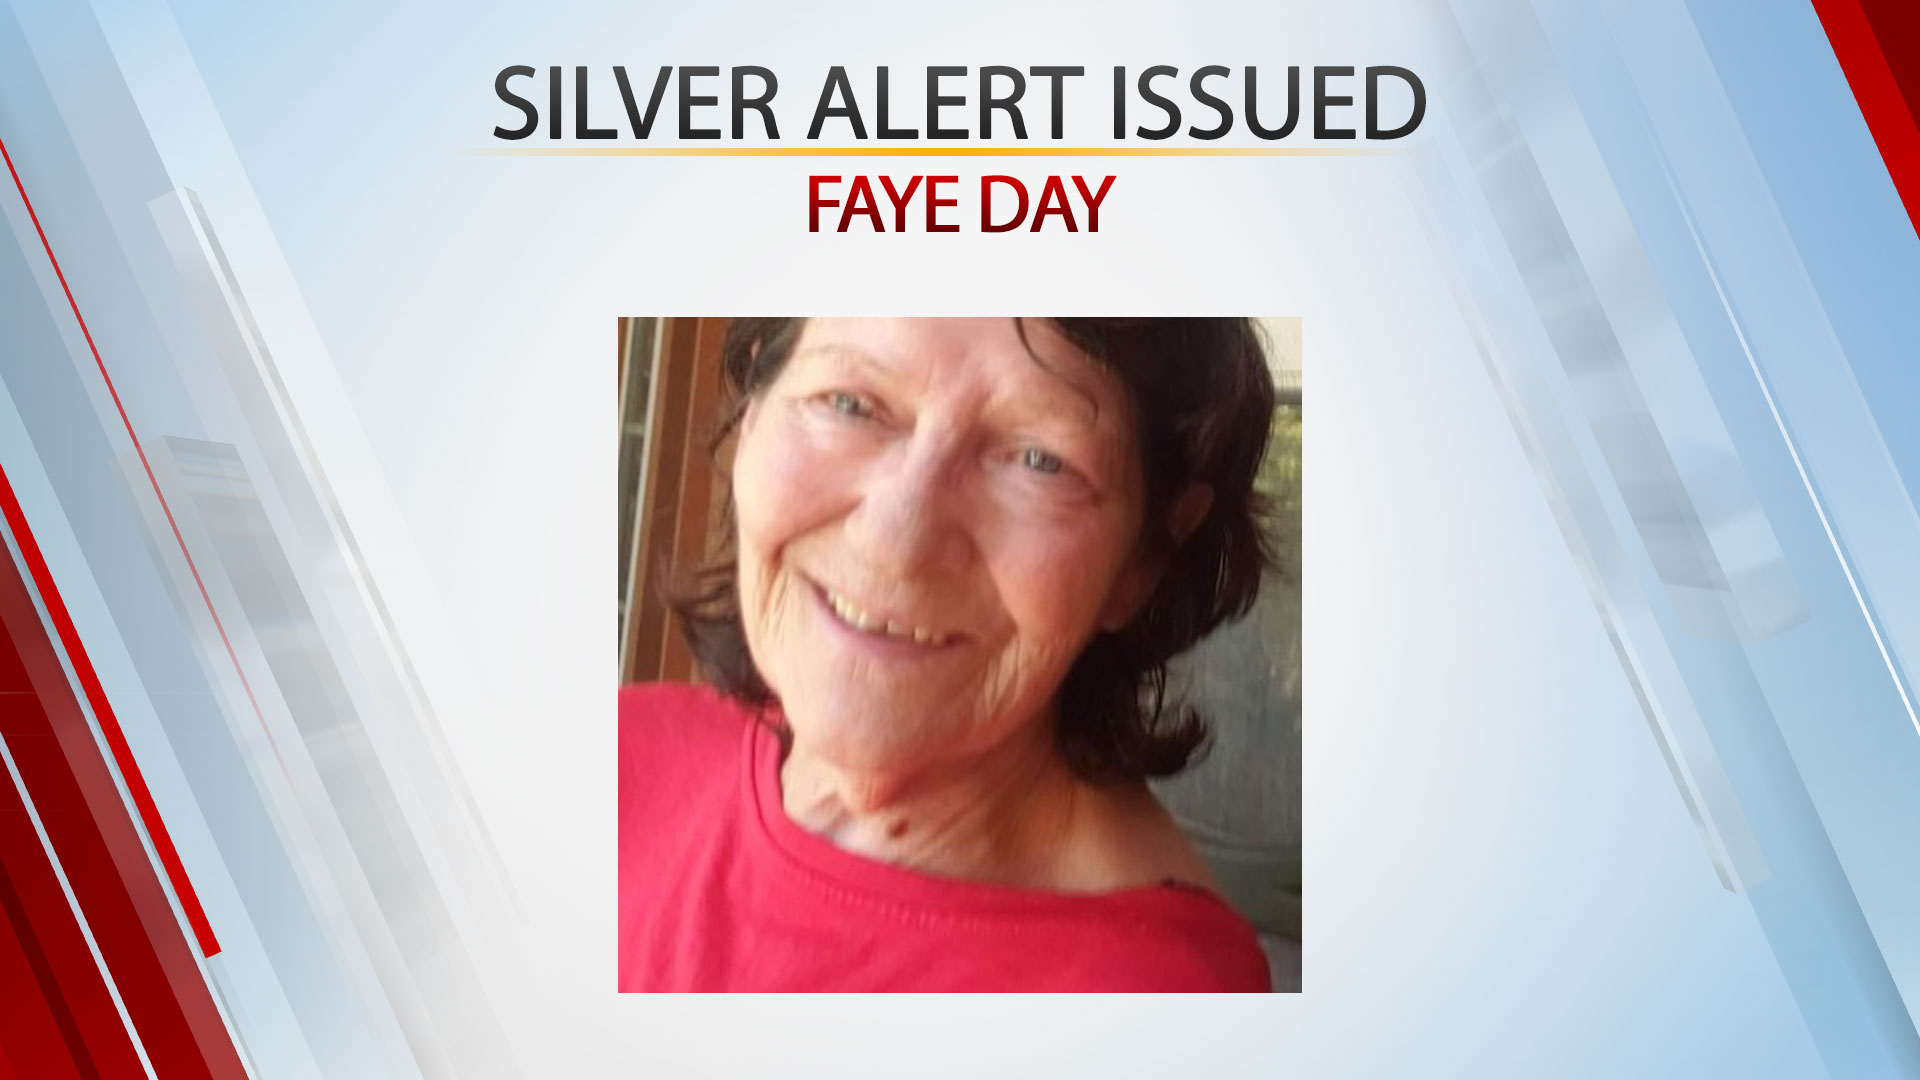 Silver Alert Issued For Missing 73-Year-Old Woman In Creek County